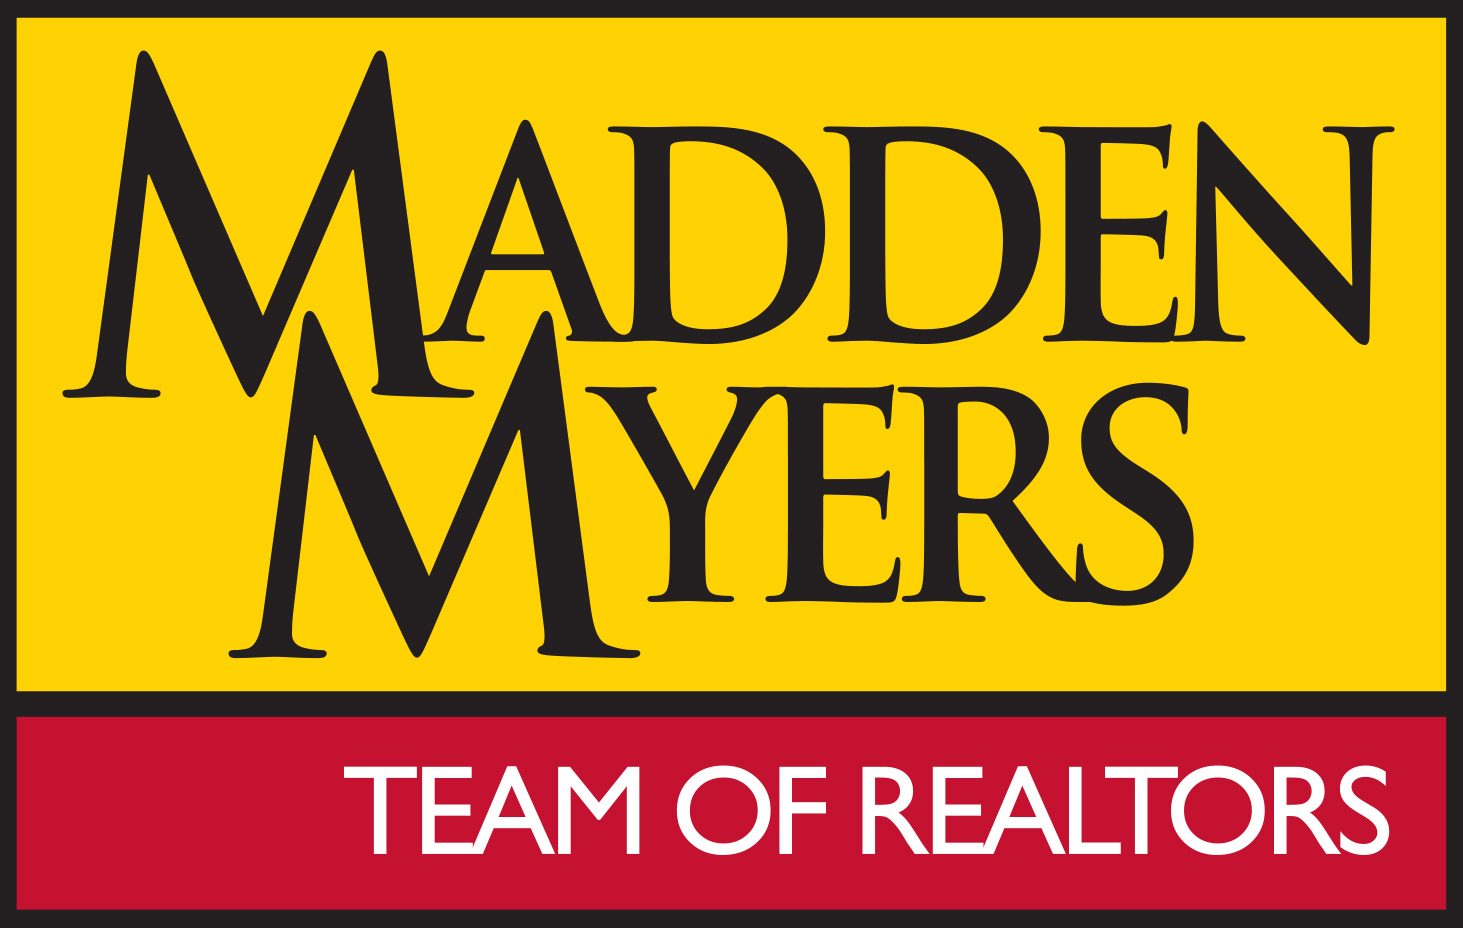 Madden Myers Team of REALTORs